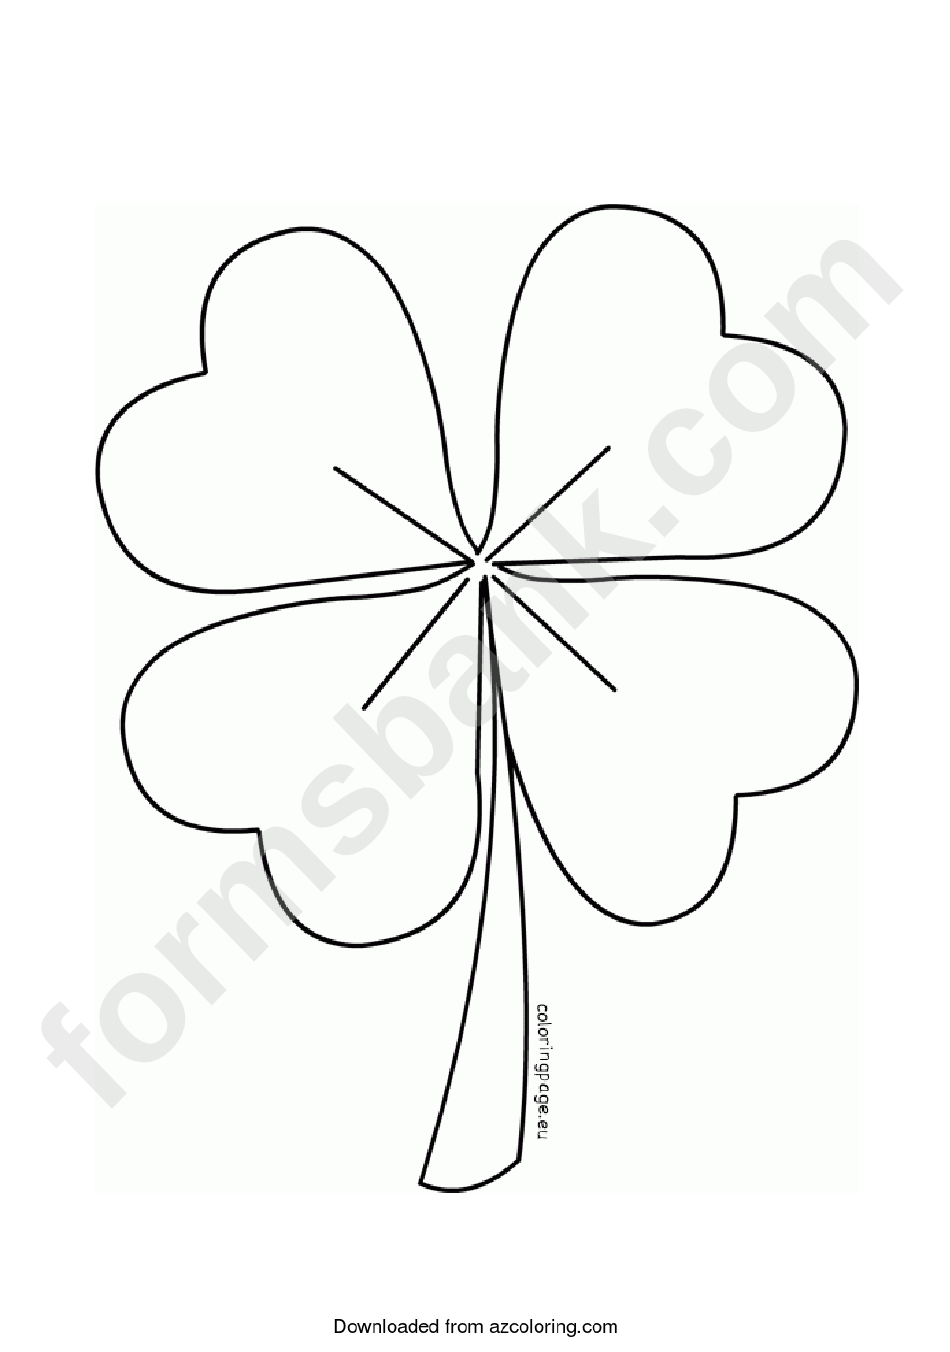 four leaf clover template printable pdf download